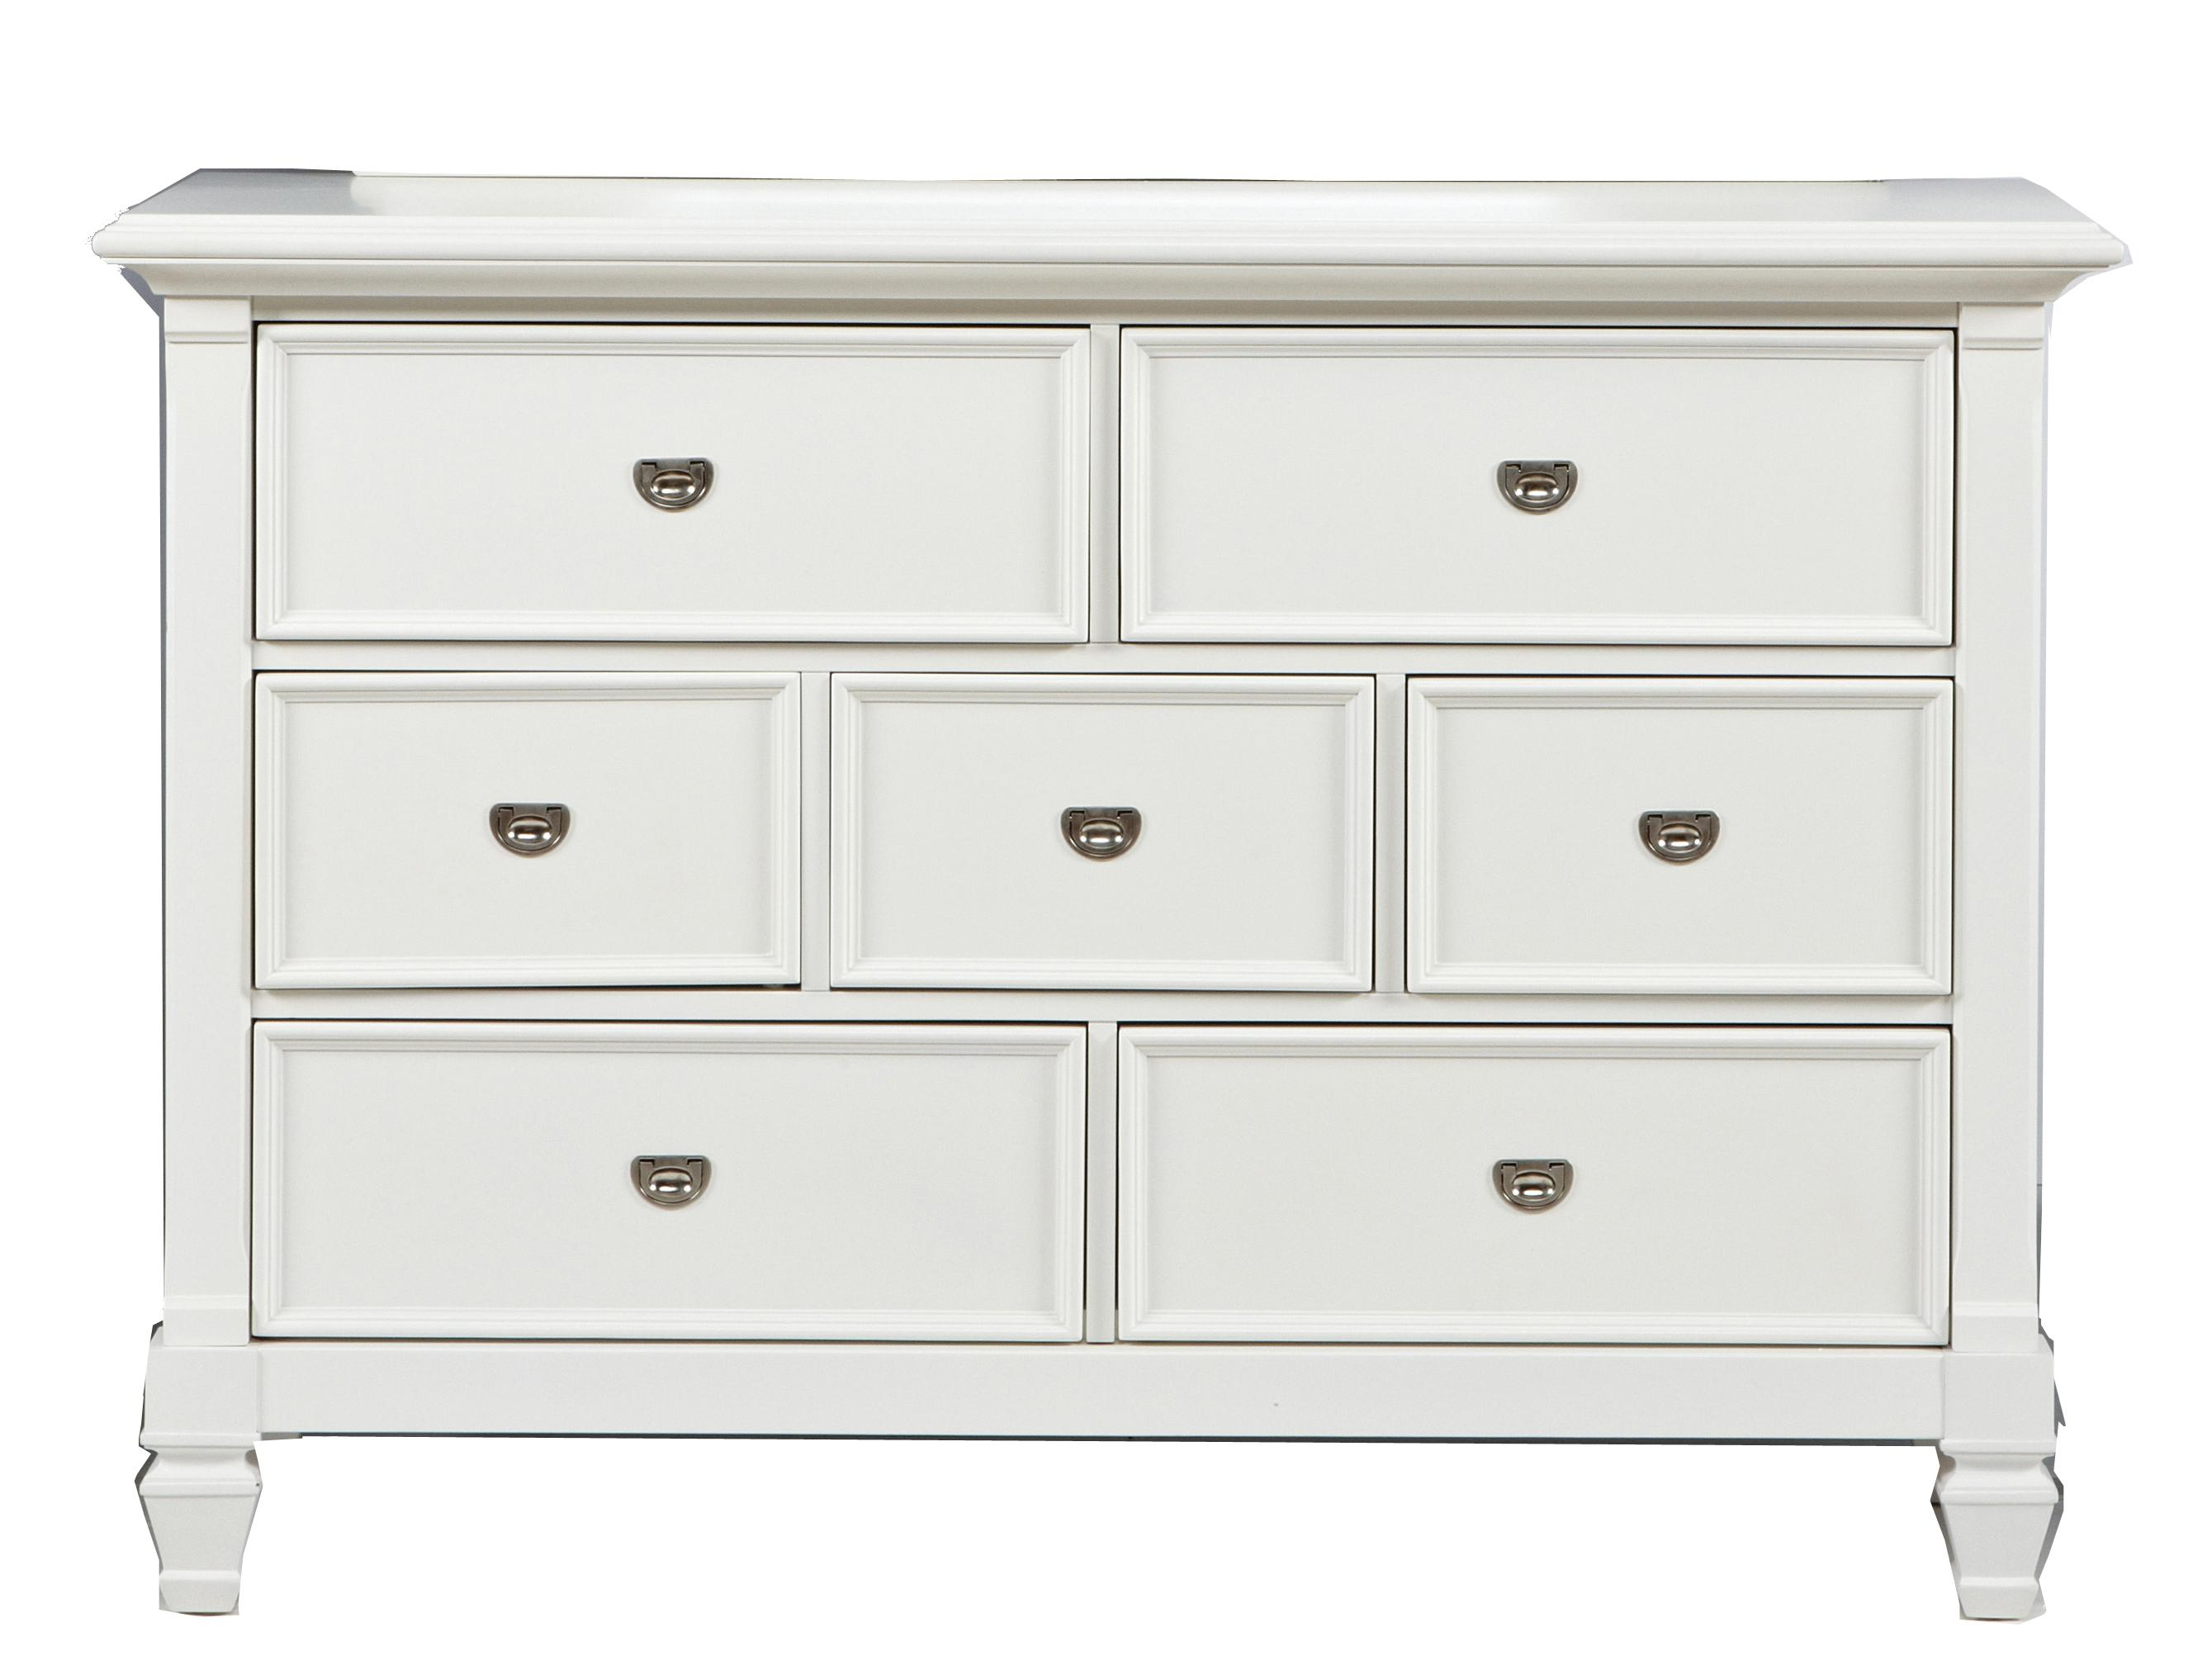 Morris Home Furnishings Berkshire Berkshire Dresser - Item Number: 2697-01